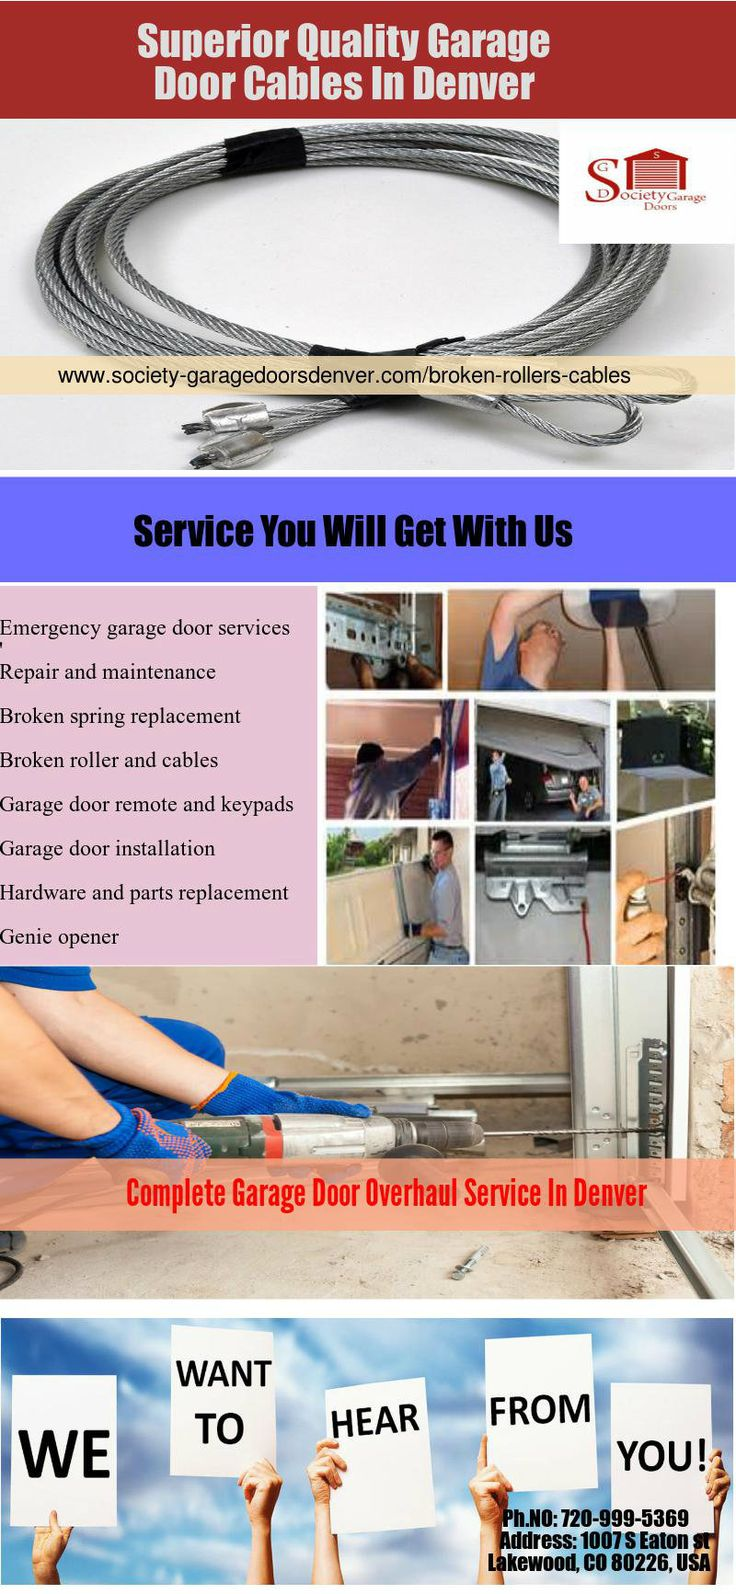 Society Garage Door Provides An Effective And Durable Broken Garage Door  Cable And Roller Replacement U0026 Repair Services In Denver, CO.